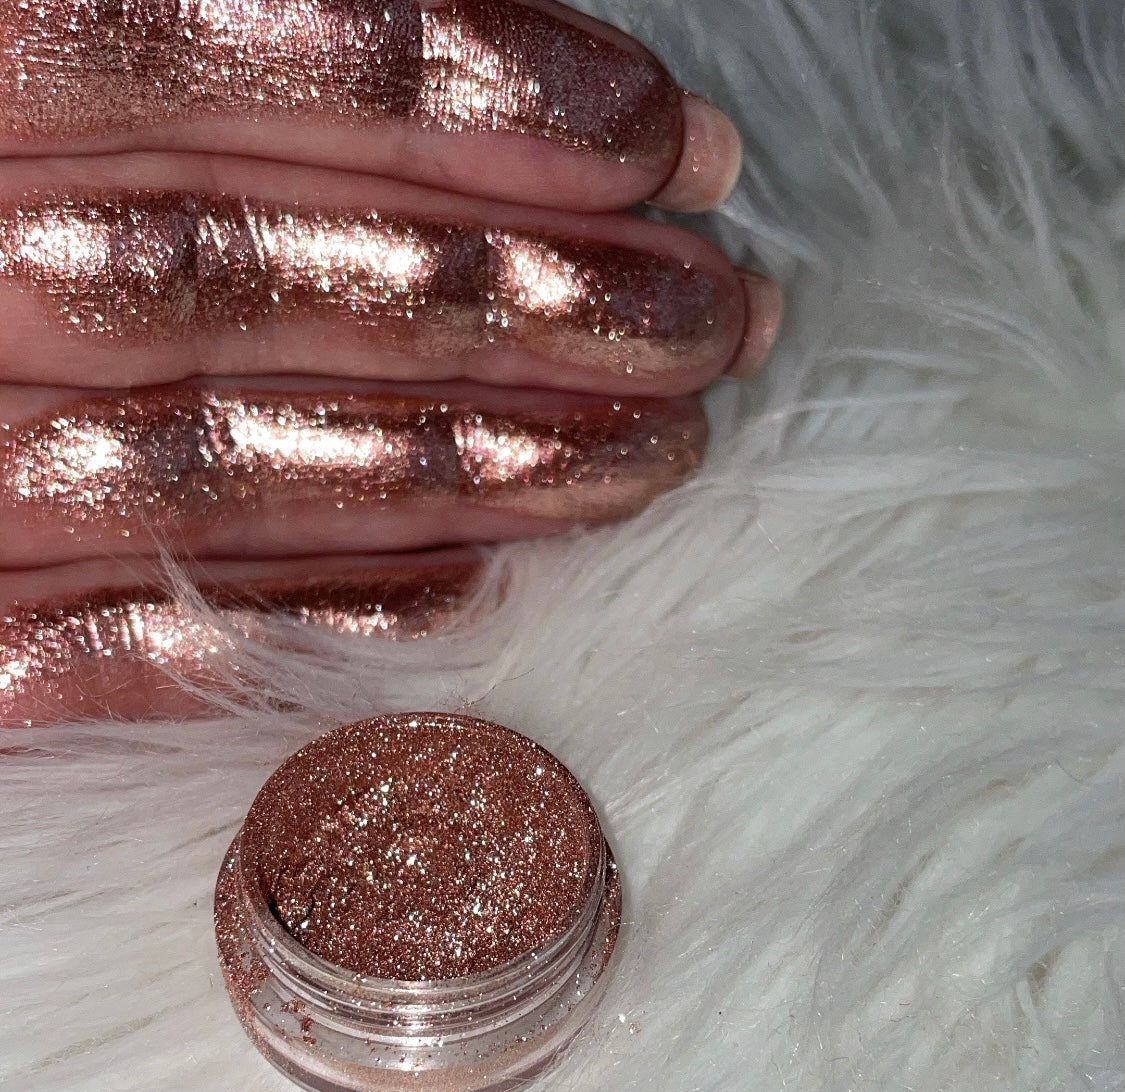 ROSE CARAMEL - DIAMOND DUST SPARKLING PIGMENT